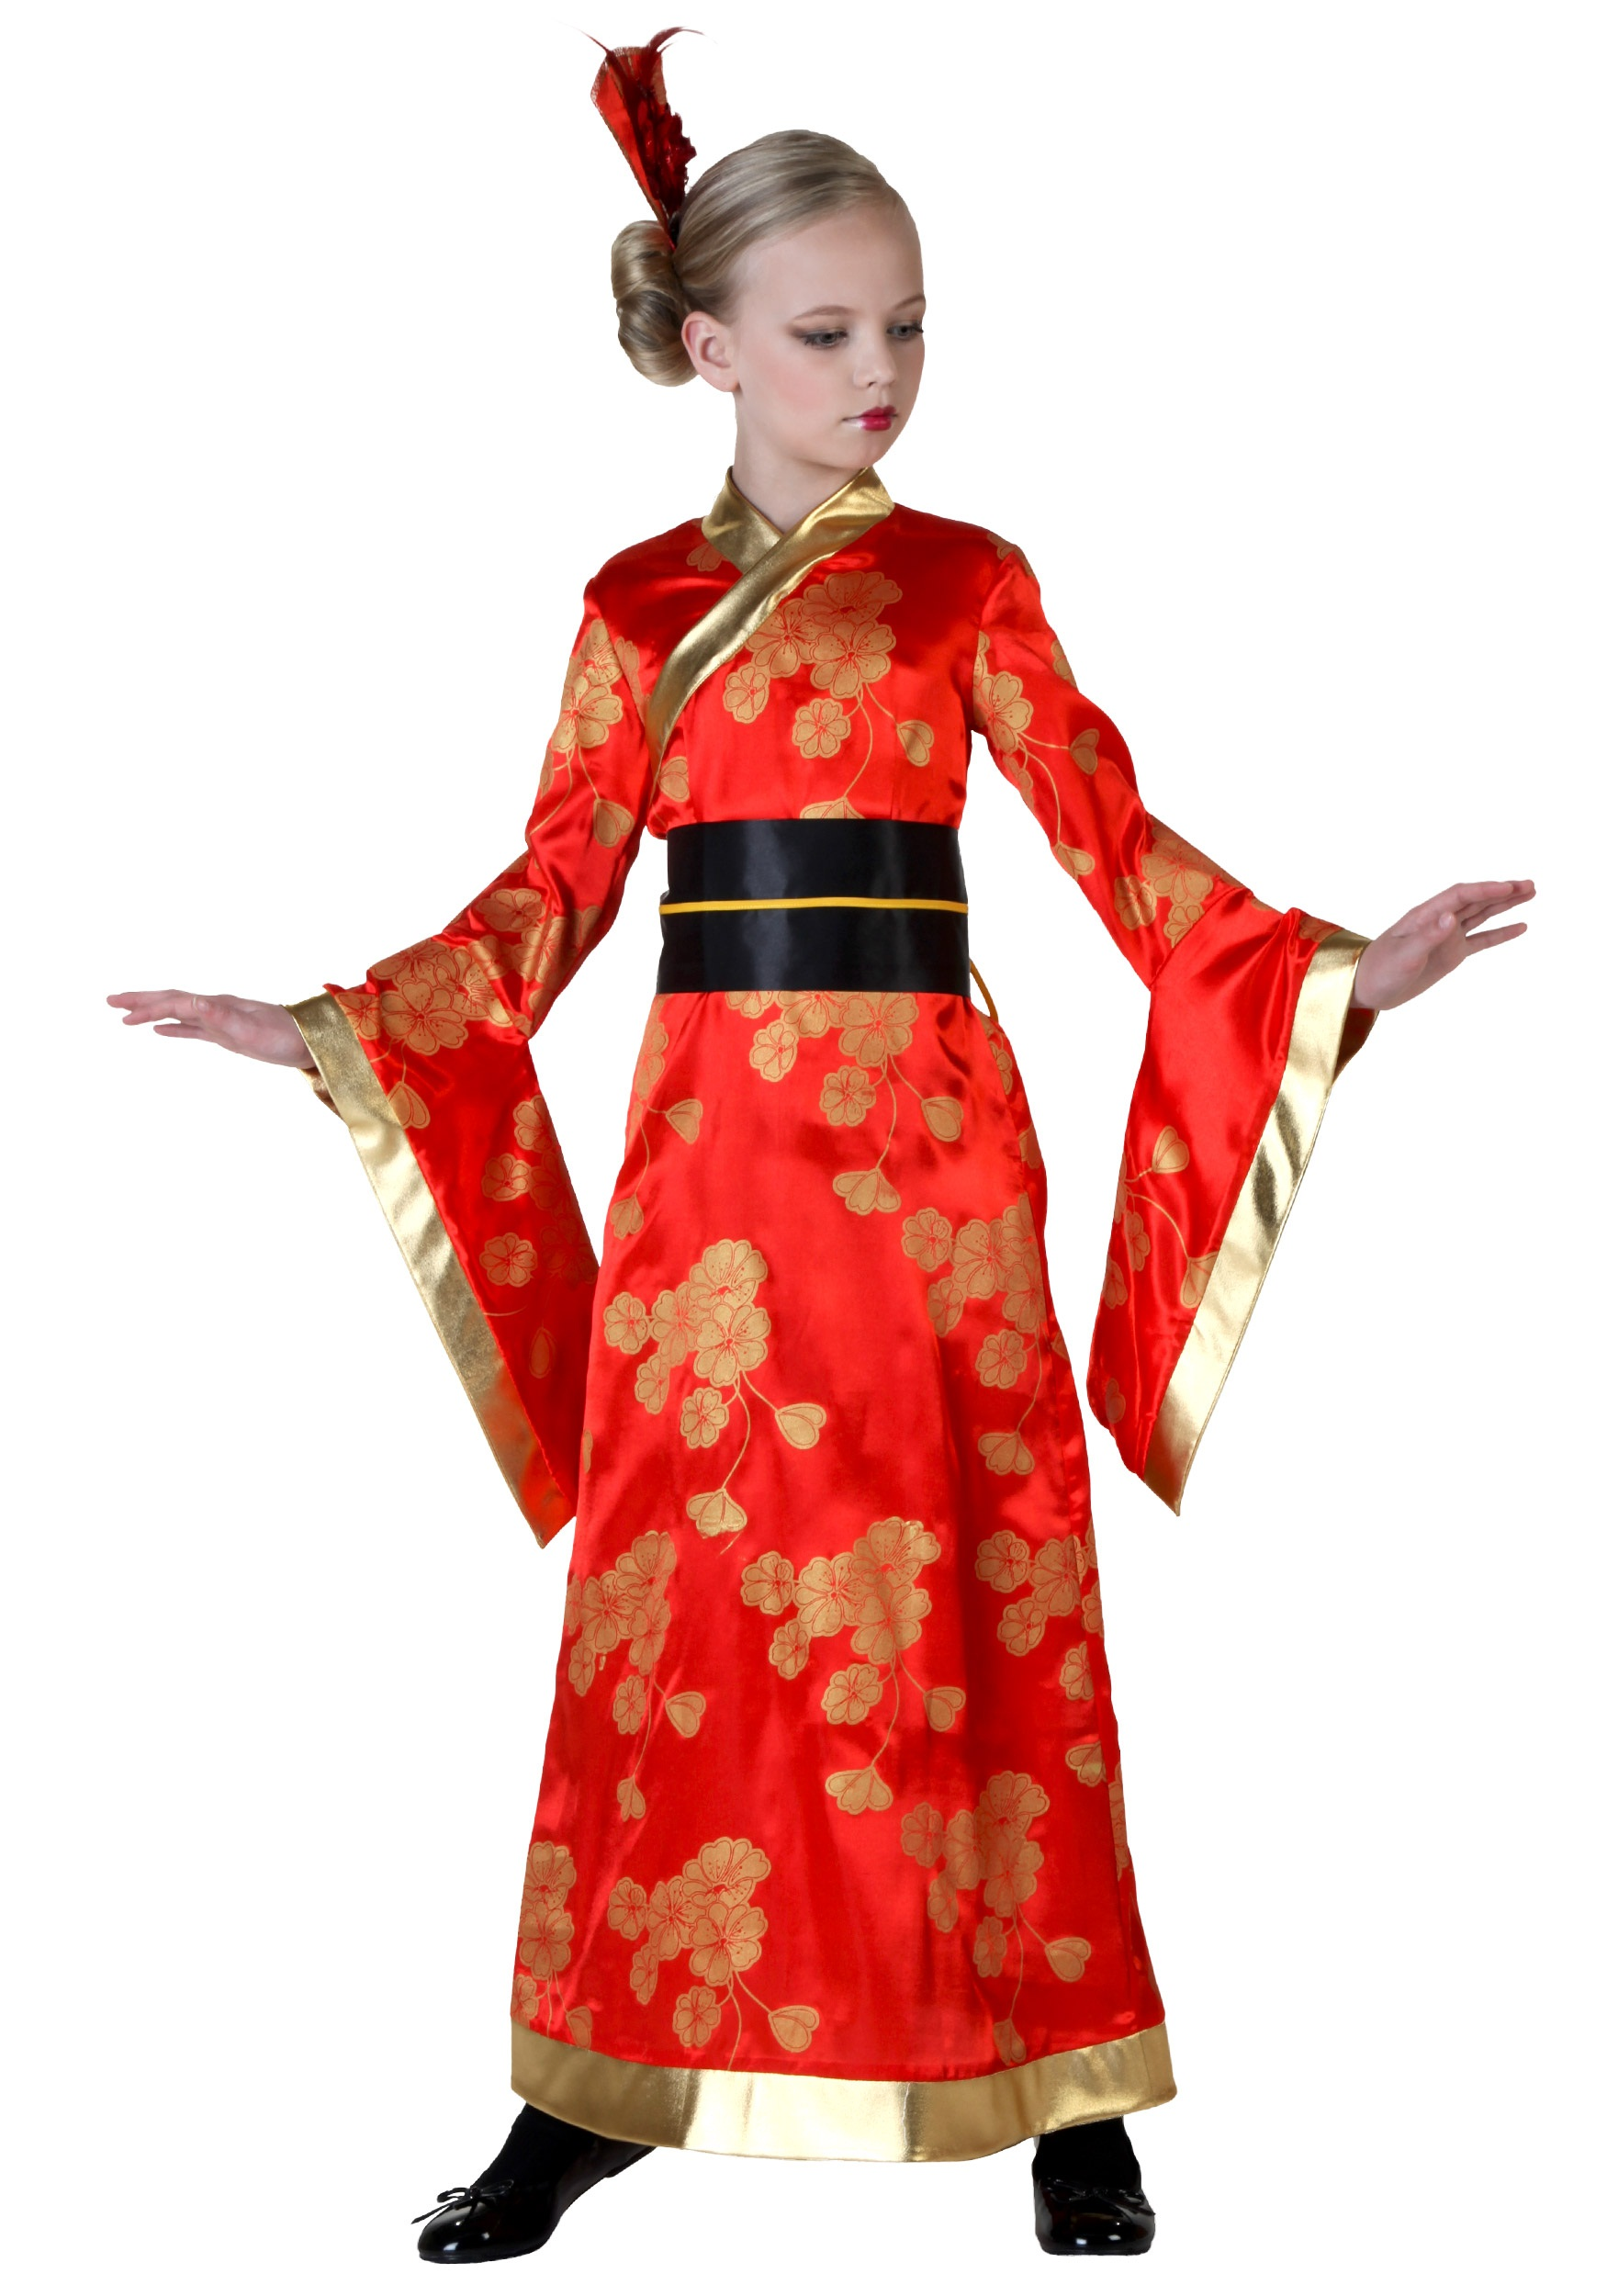 Agree, this girl geisha costume pity